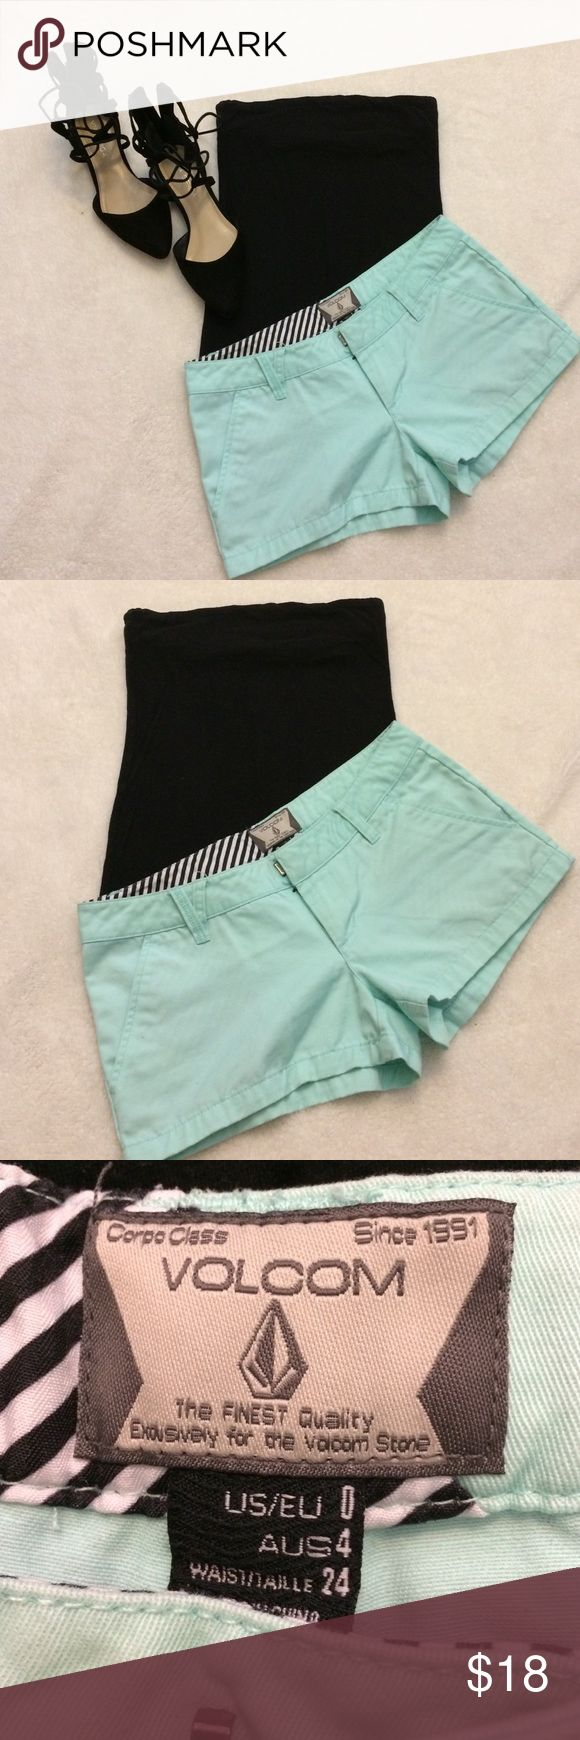 Volcom Teal Shorts Volcom Teal Shorts - Size 0 - Waist 24 - Teal color - Great condition. Volcom Shorts